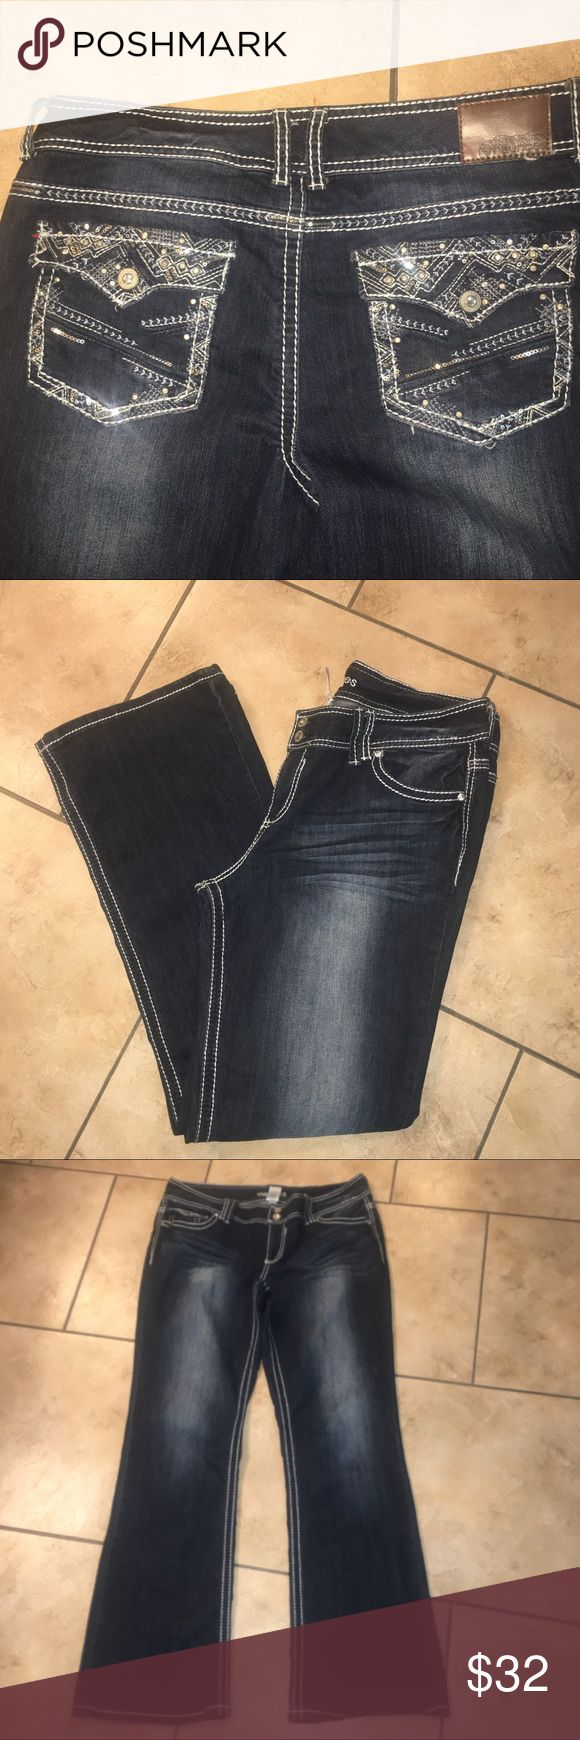 Maurice's sz 13/14 reg white stitching bling EUC Maurice's sz 13/14 reg white stitching bling EUC. Worn 2 times. Maurices Jeans